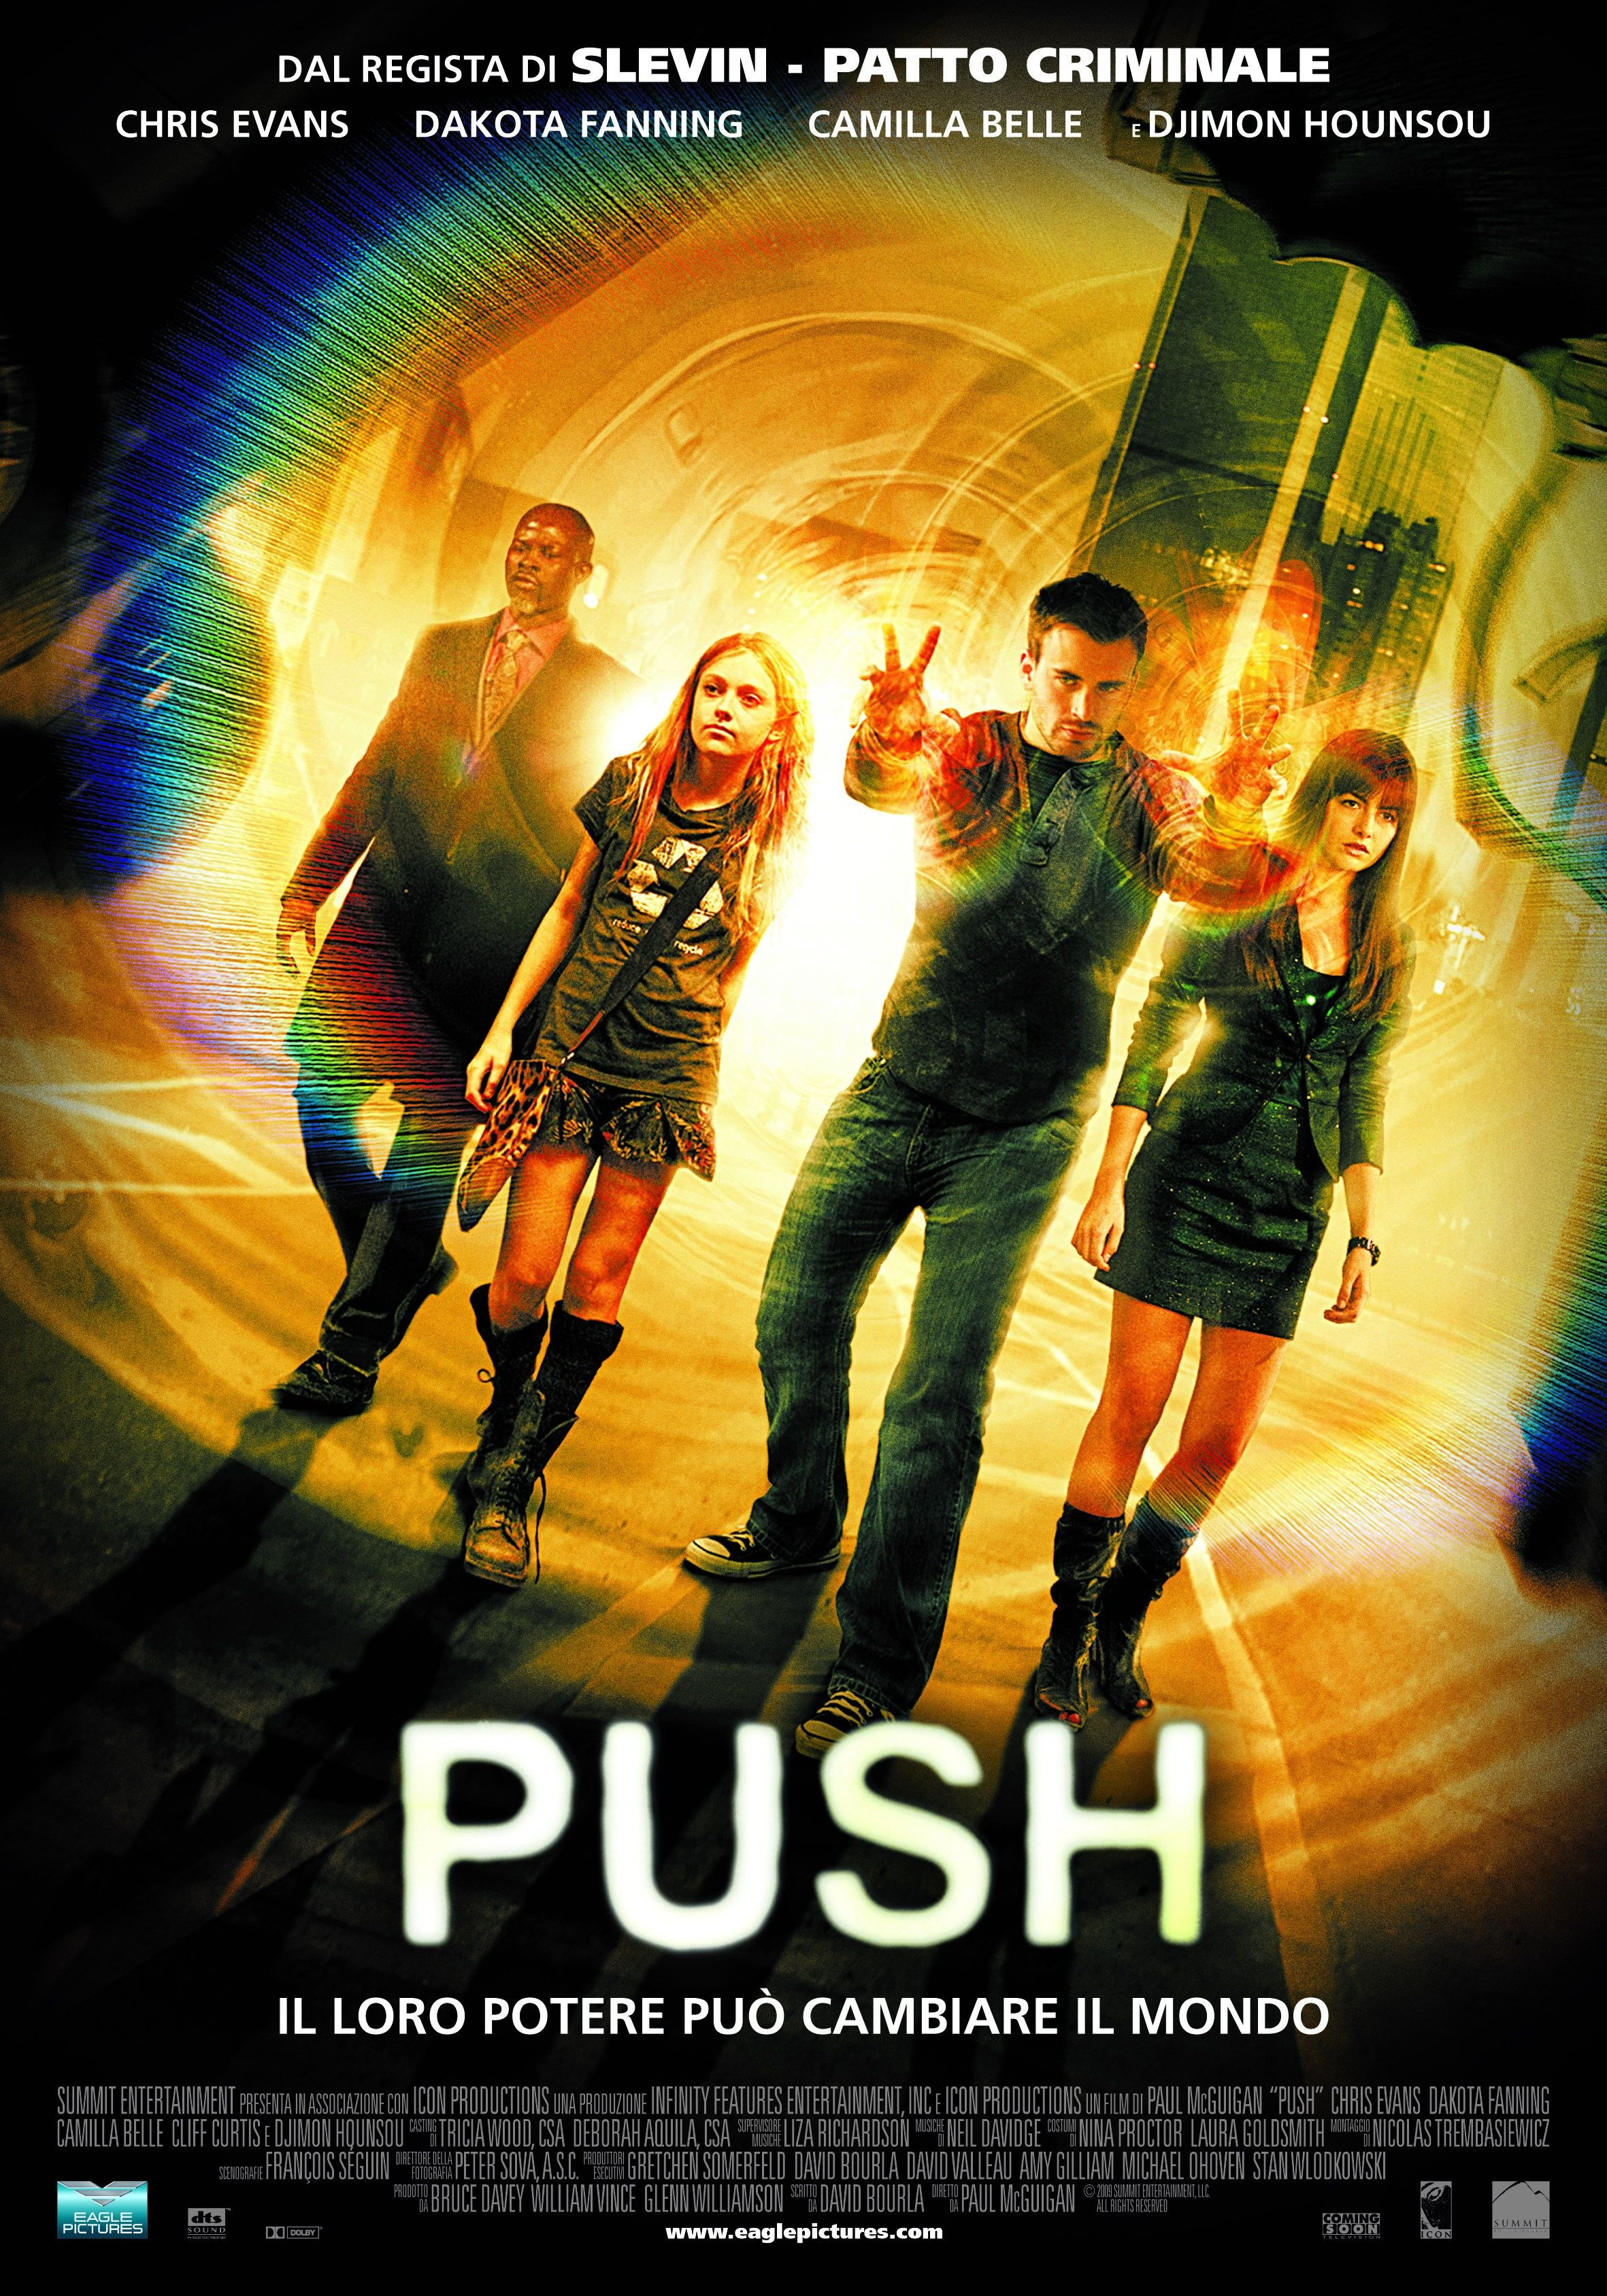 Watch push by sapphire the movie